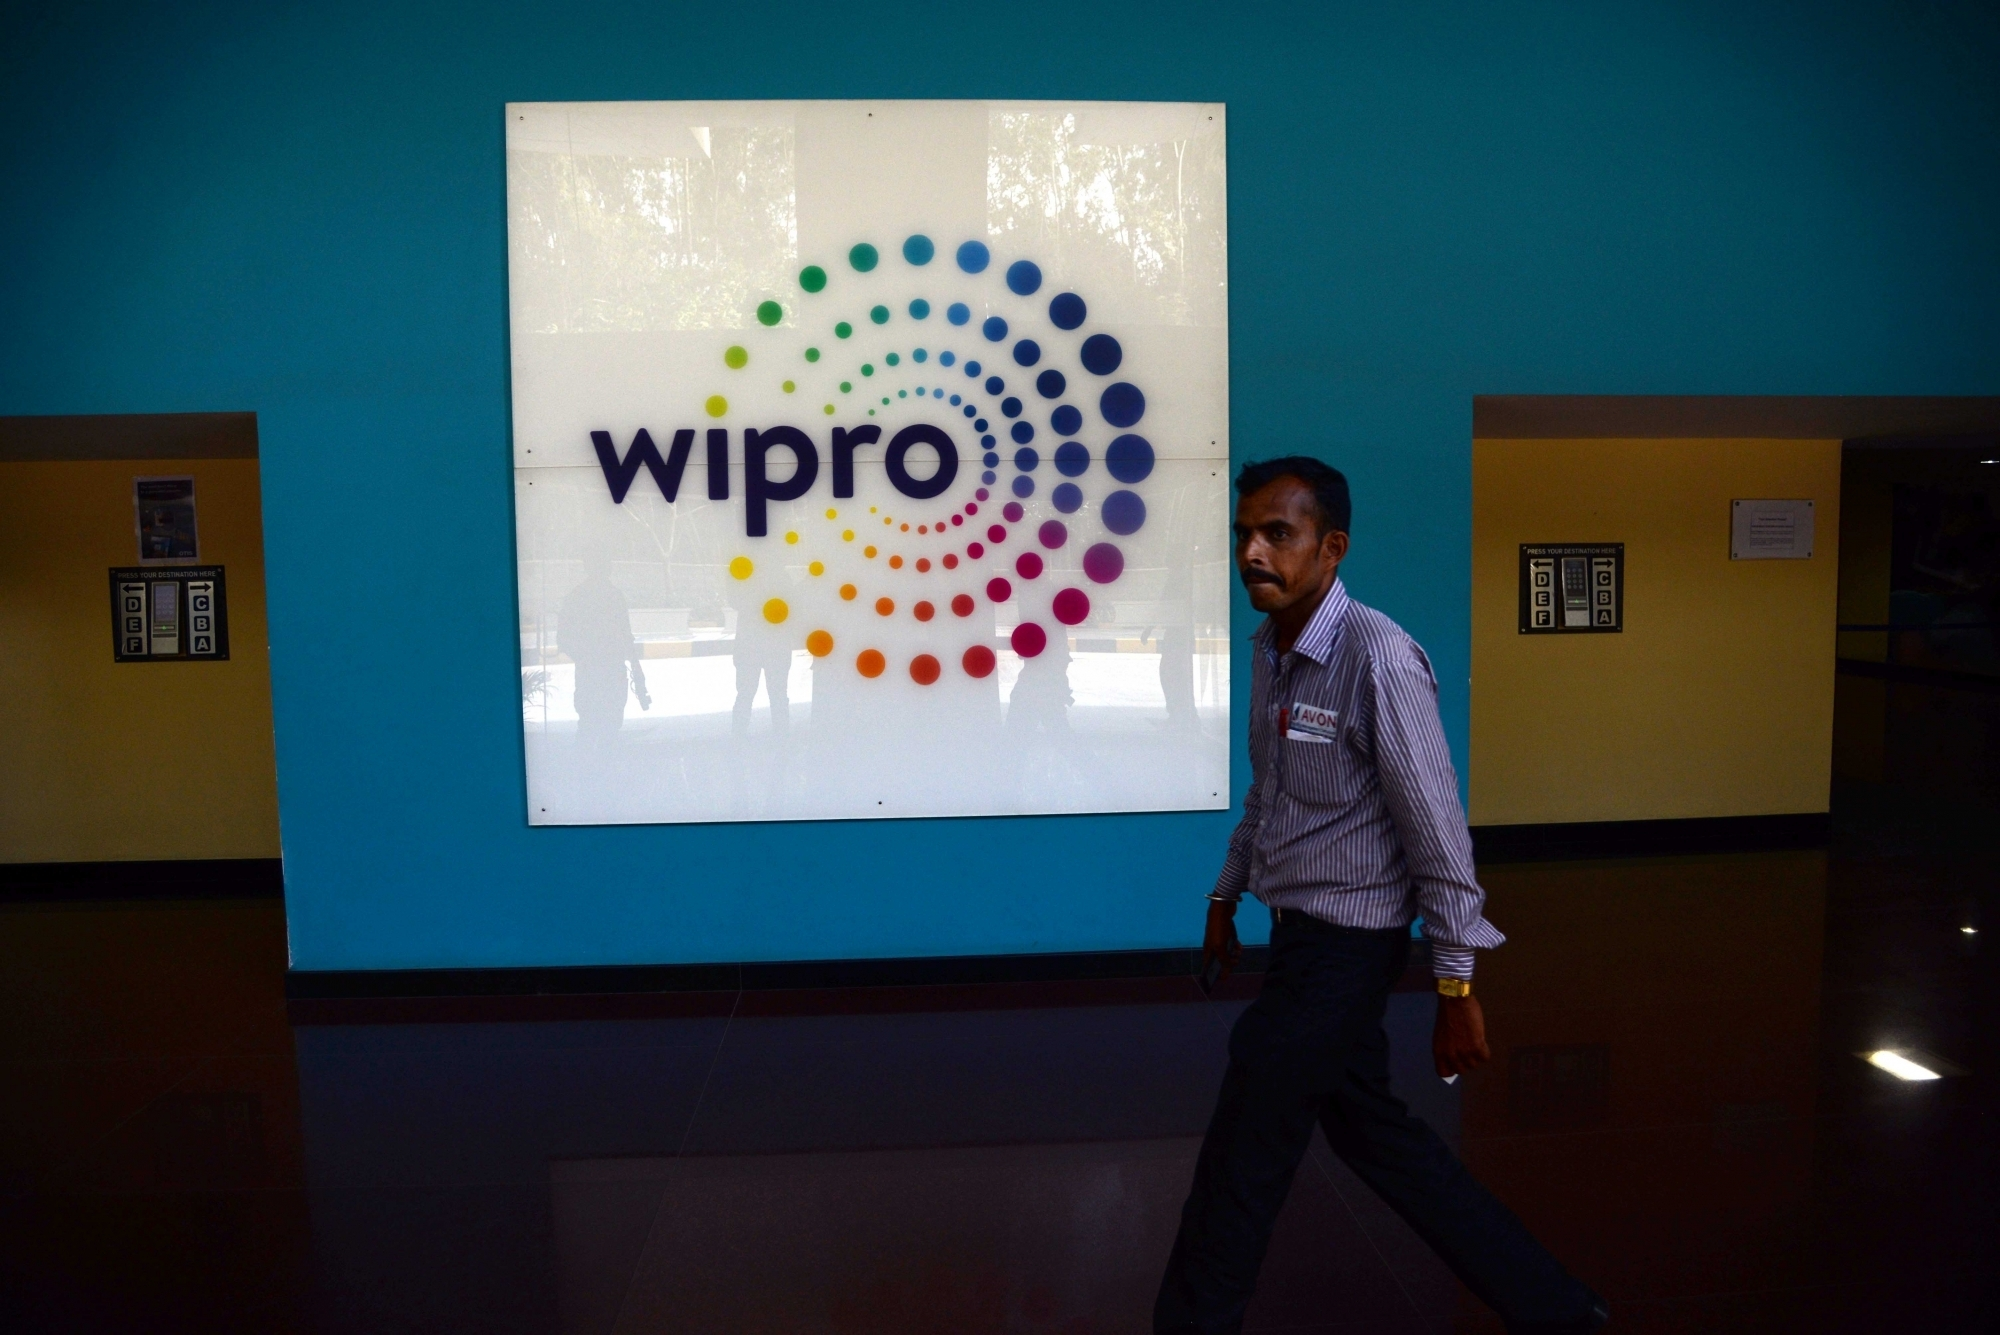 Wipro Digital buys US firm Rational Interaction